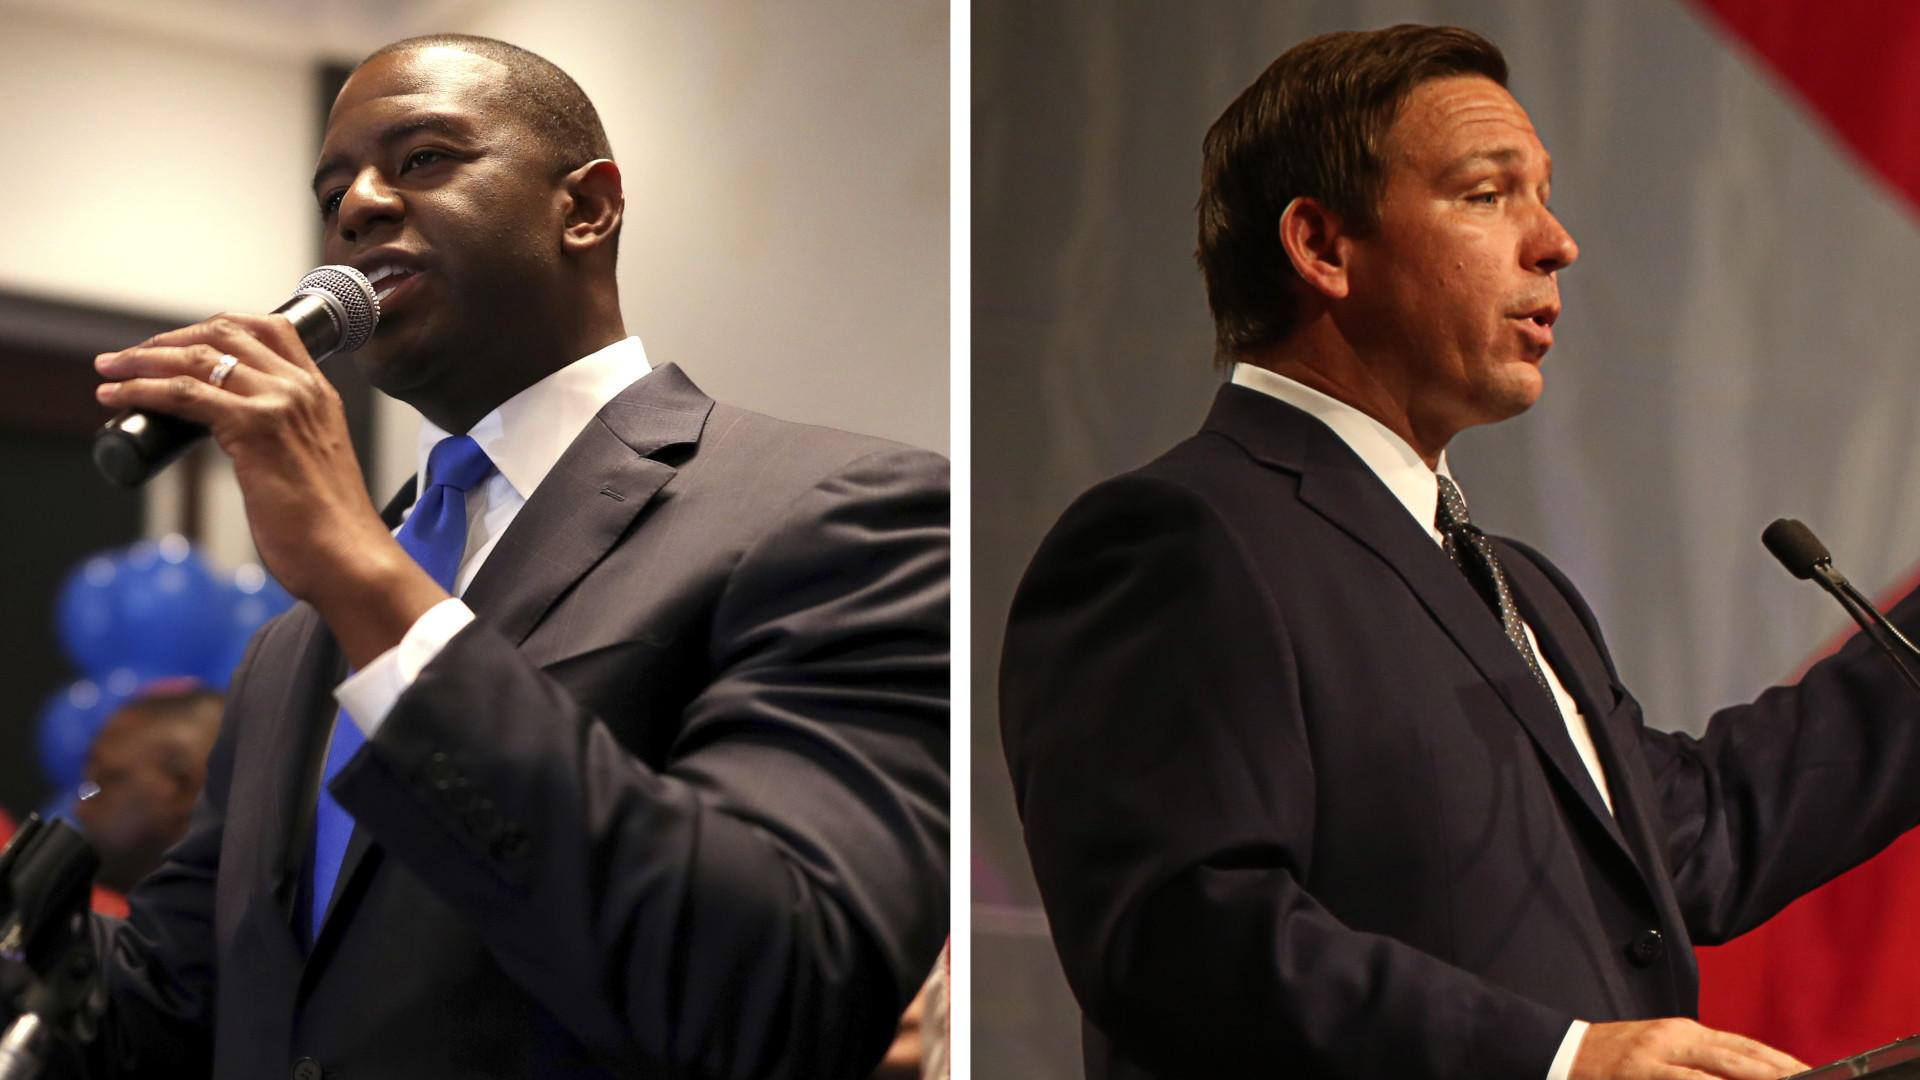 10-24-18: Florida Gubernatorial Debate Watch Party - Join Women's March Broward, The Dolphin Democrats and all your friends to watch the gubernatorial debate.6:00 - 7:00 social hour7:00 - 8:00 debate viewing8:00 - 9:00 debrief, raffles and calls to actionThe event will be catered, and beer/wine will be available for responsible consumption. Please REGISTER AND RSVP via Eventbrite. Pre-purchased tickets are required for this event. Tickets are transferable but not refundable.Please note that tickets for the event are not for candidate fundraising, but there will be an opportunity at the event to donate directly to the Gillum for Governor campaign. #GillumForGovernor #BringItHome #PowerToThePolls #DolphinDemocrats#WomensMarchFL #WomensMarchBroward